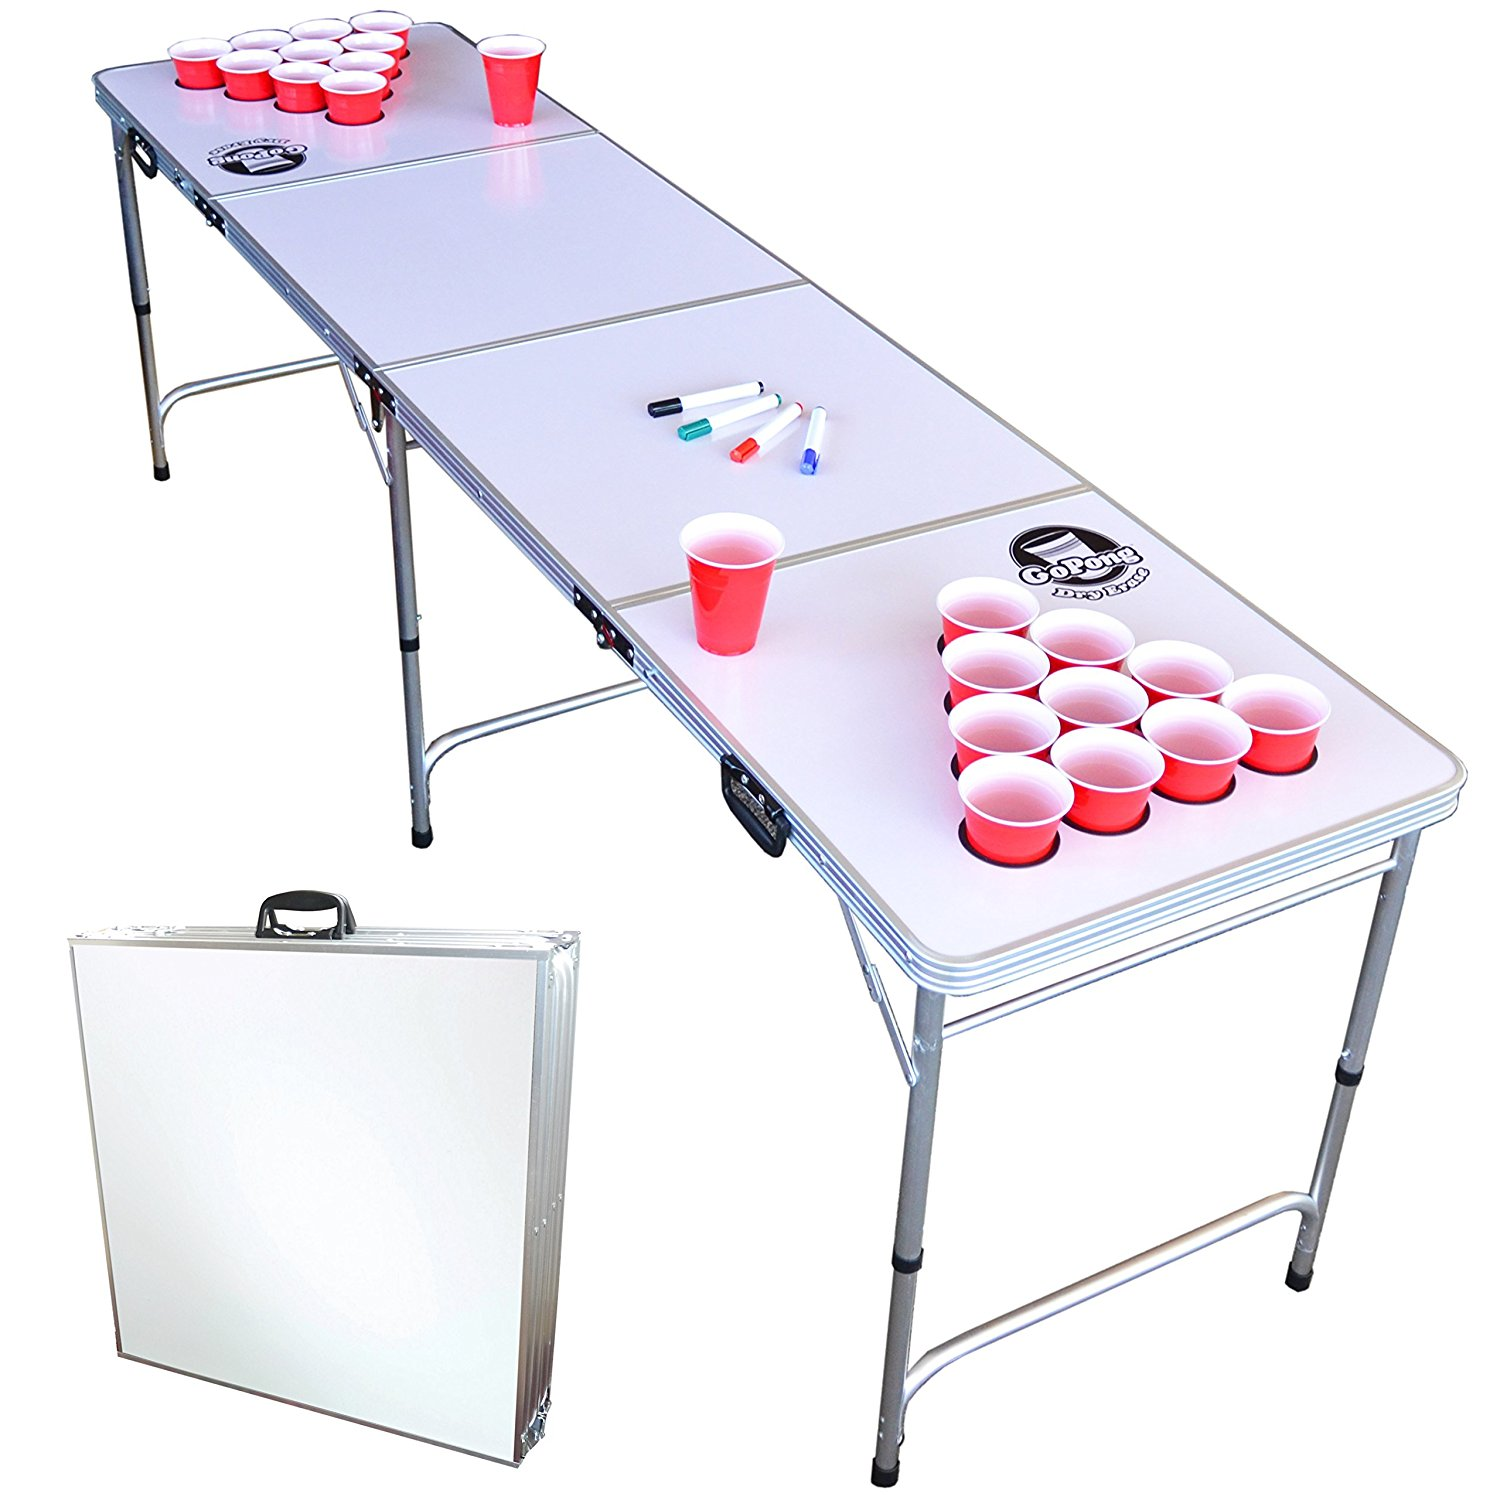 How To Play Beer Pong Sudden Death Overtime Rule